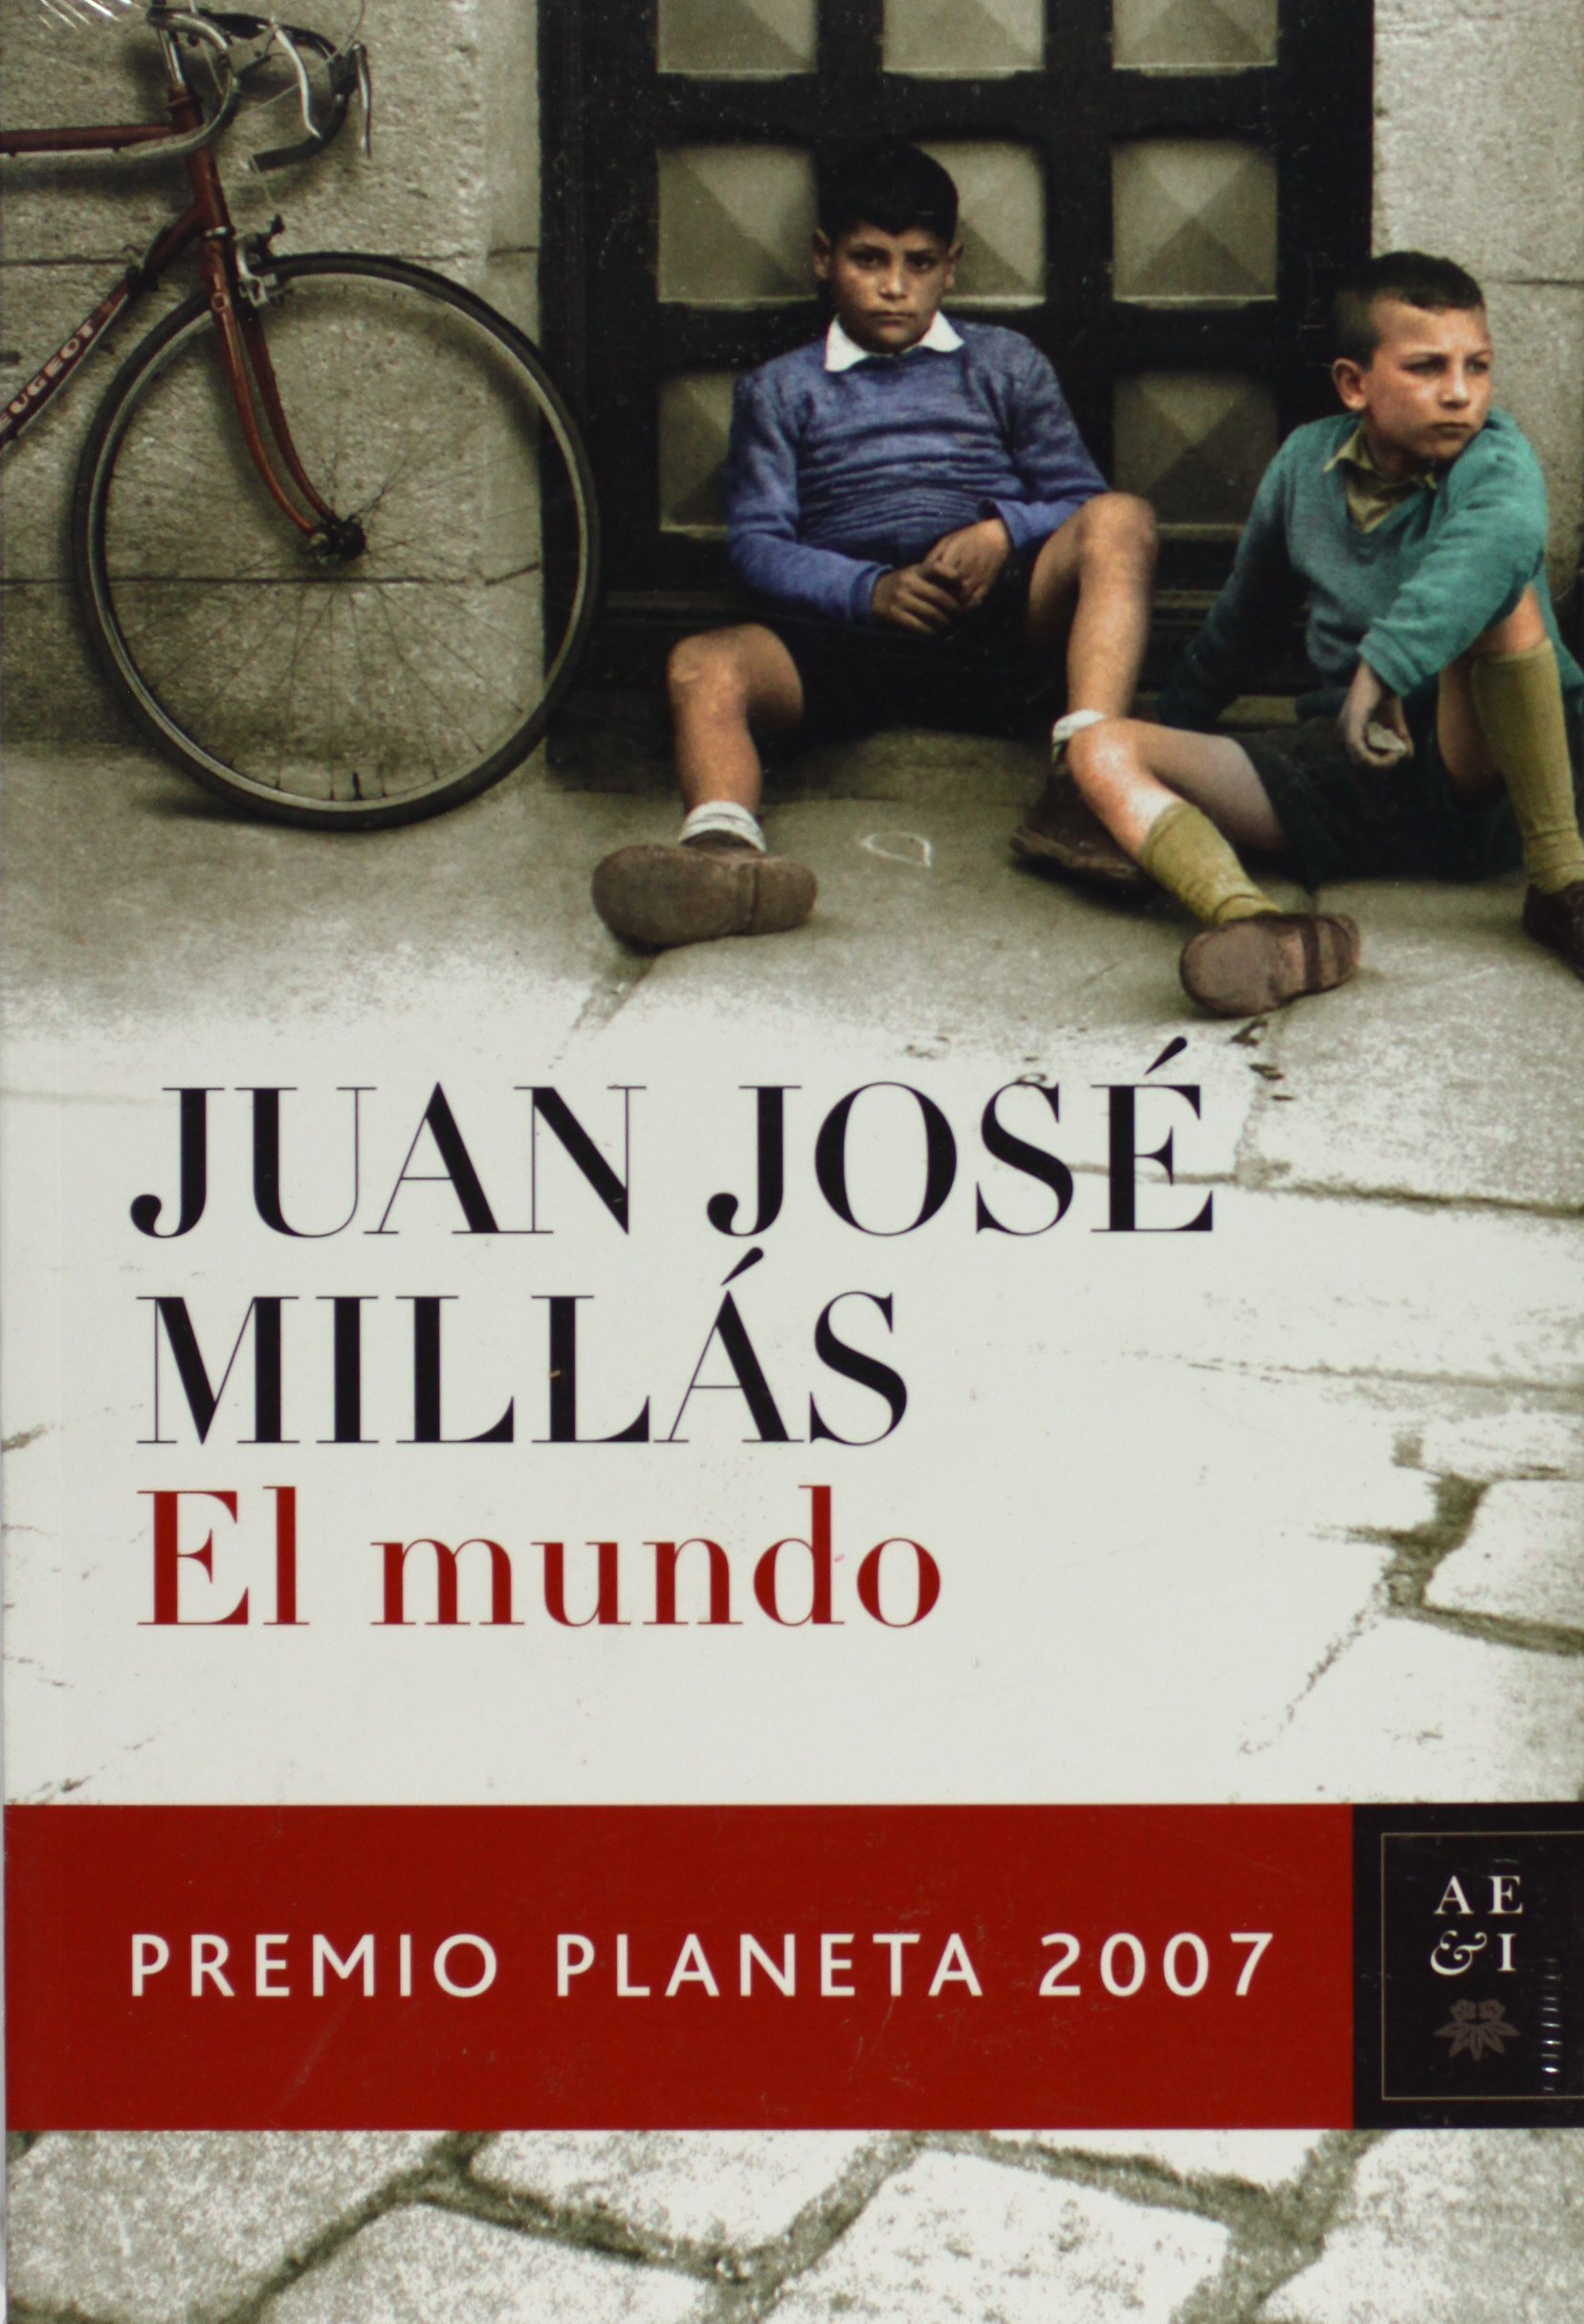 Amazon.com: El mundo/ The World (Spanish Edition) (9788408077541): Juan Jose Millas: Books